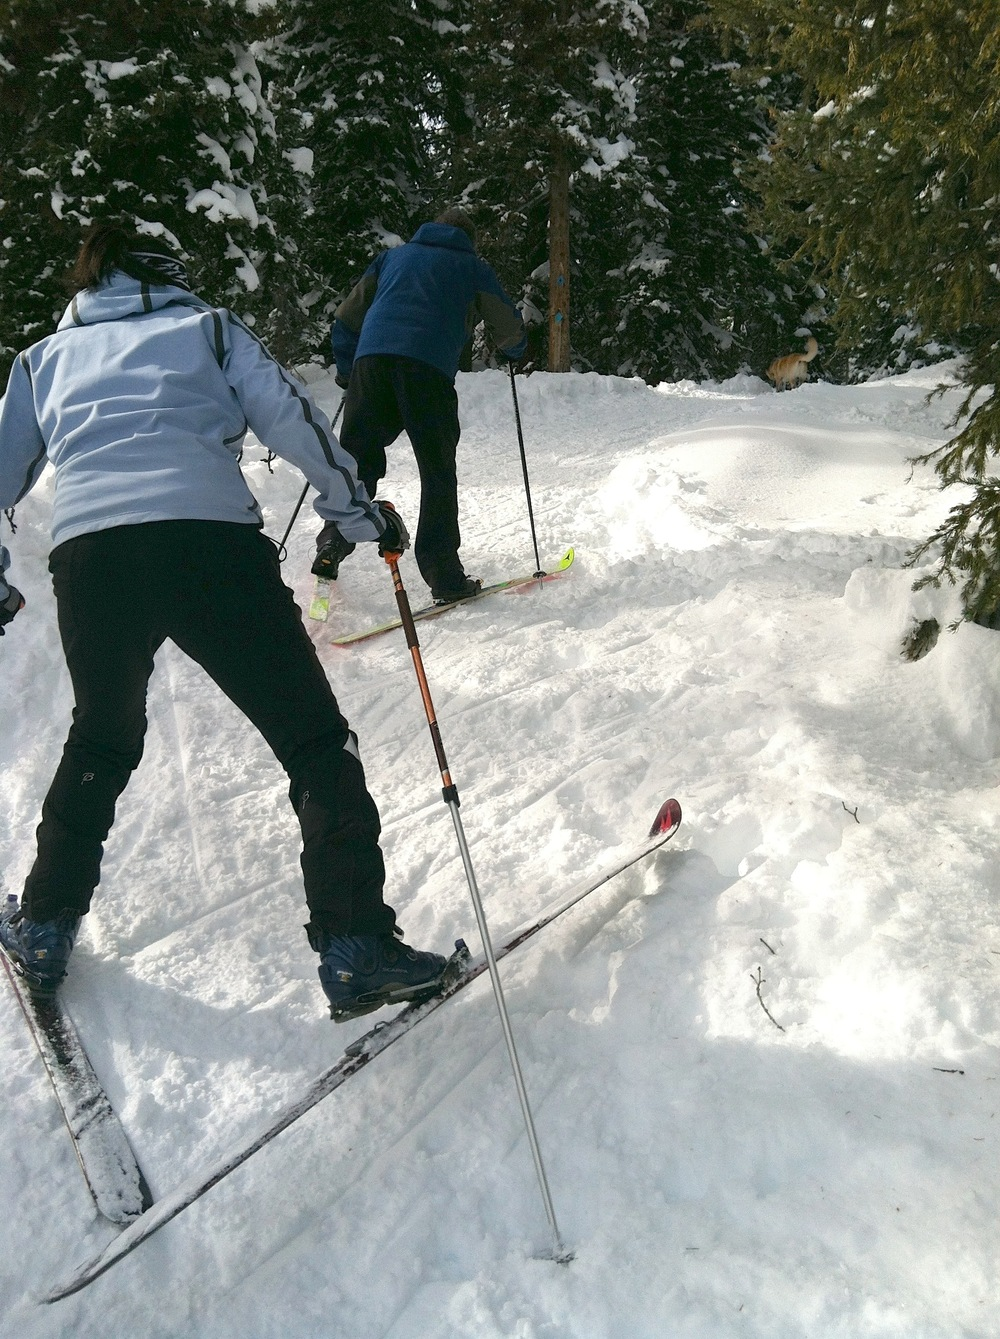 Cross-country skiiers, our sworn enemy